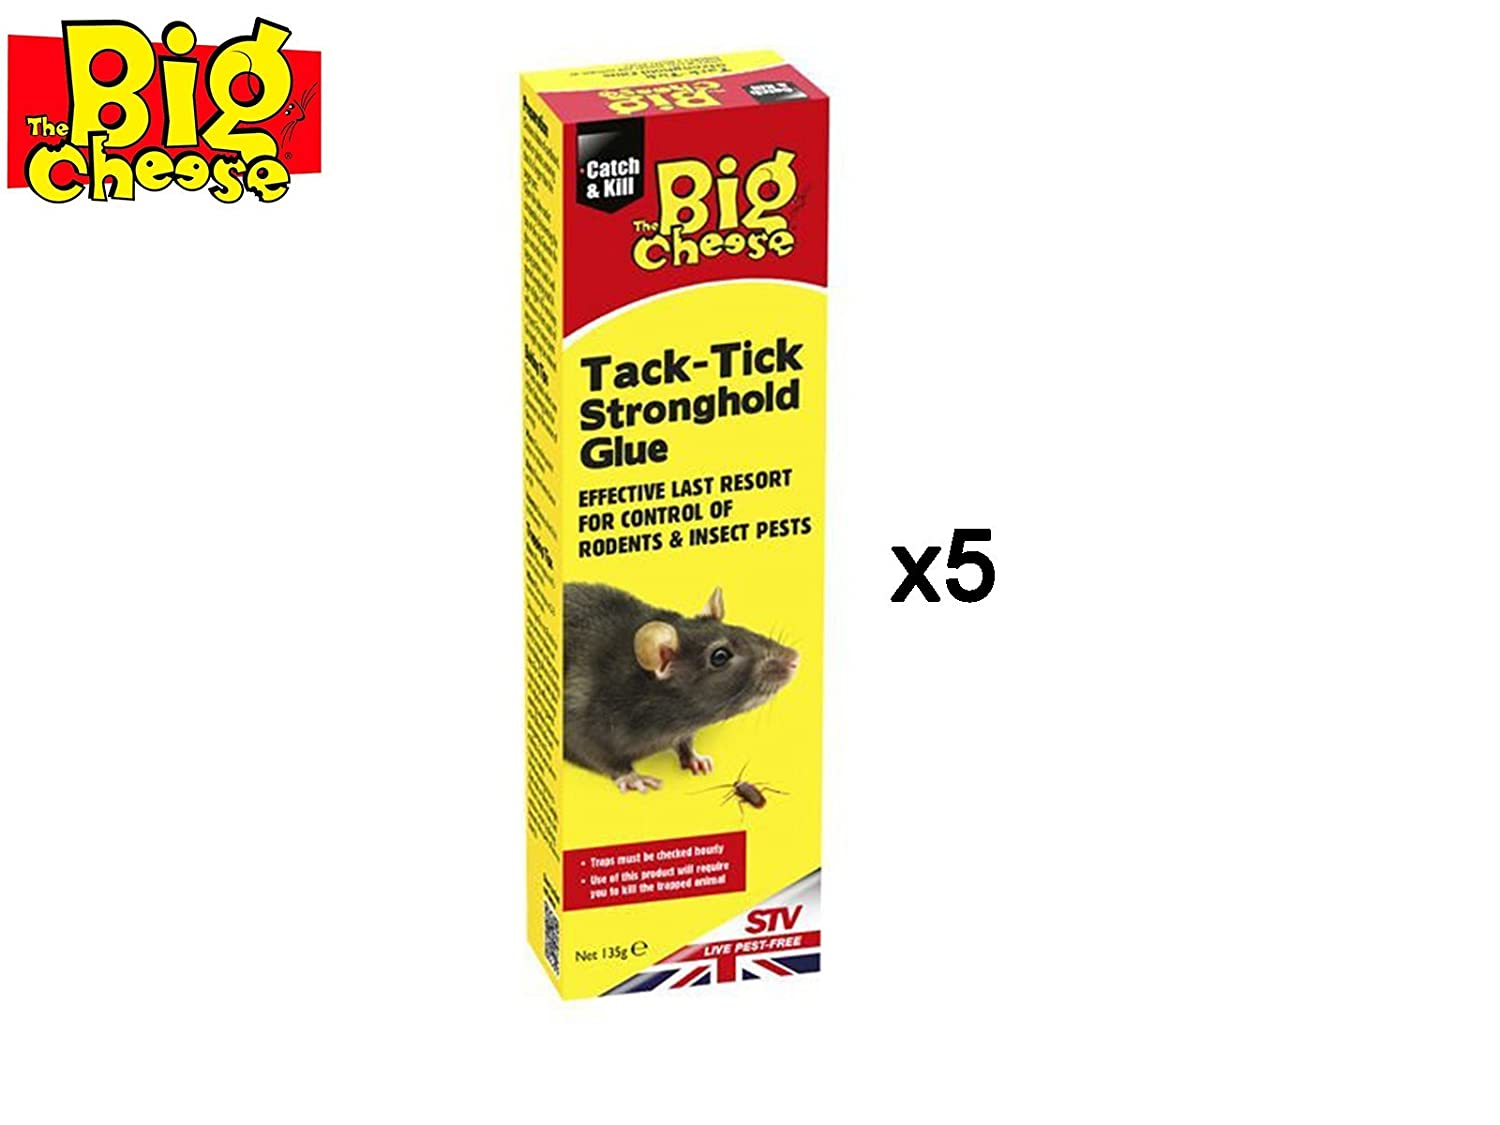 Mouse Rats Insect Pests The Big Cheese Tack-Tick Stronghold Traps Rodents